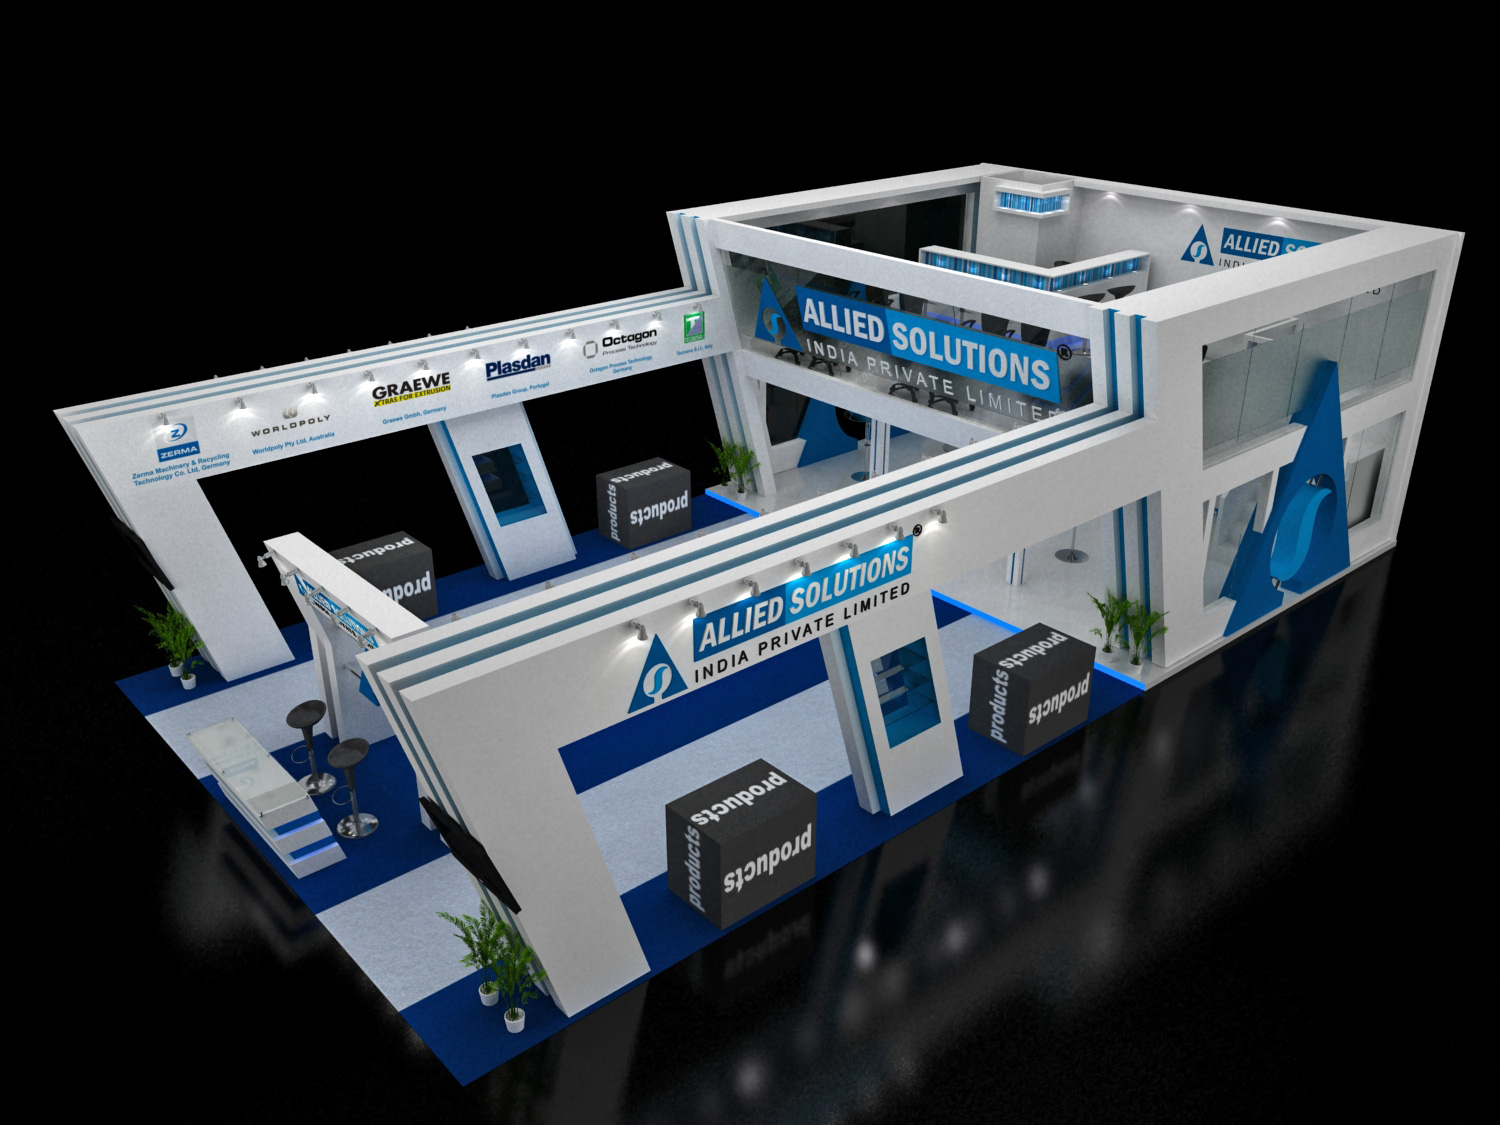 Creative Exhibition Stall Design : Creative exhibition stall images